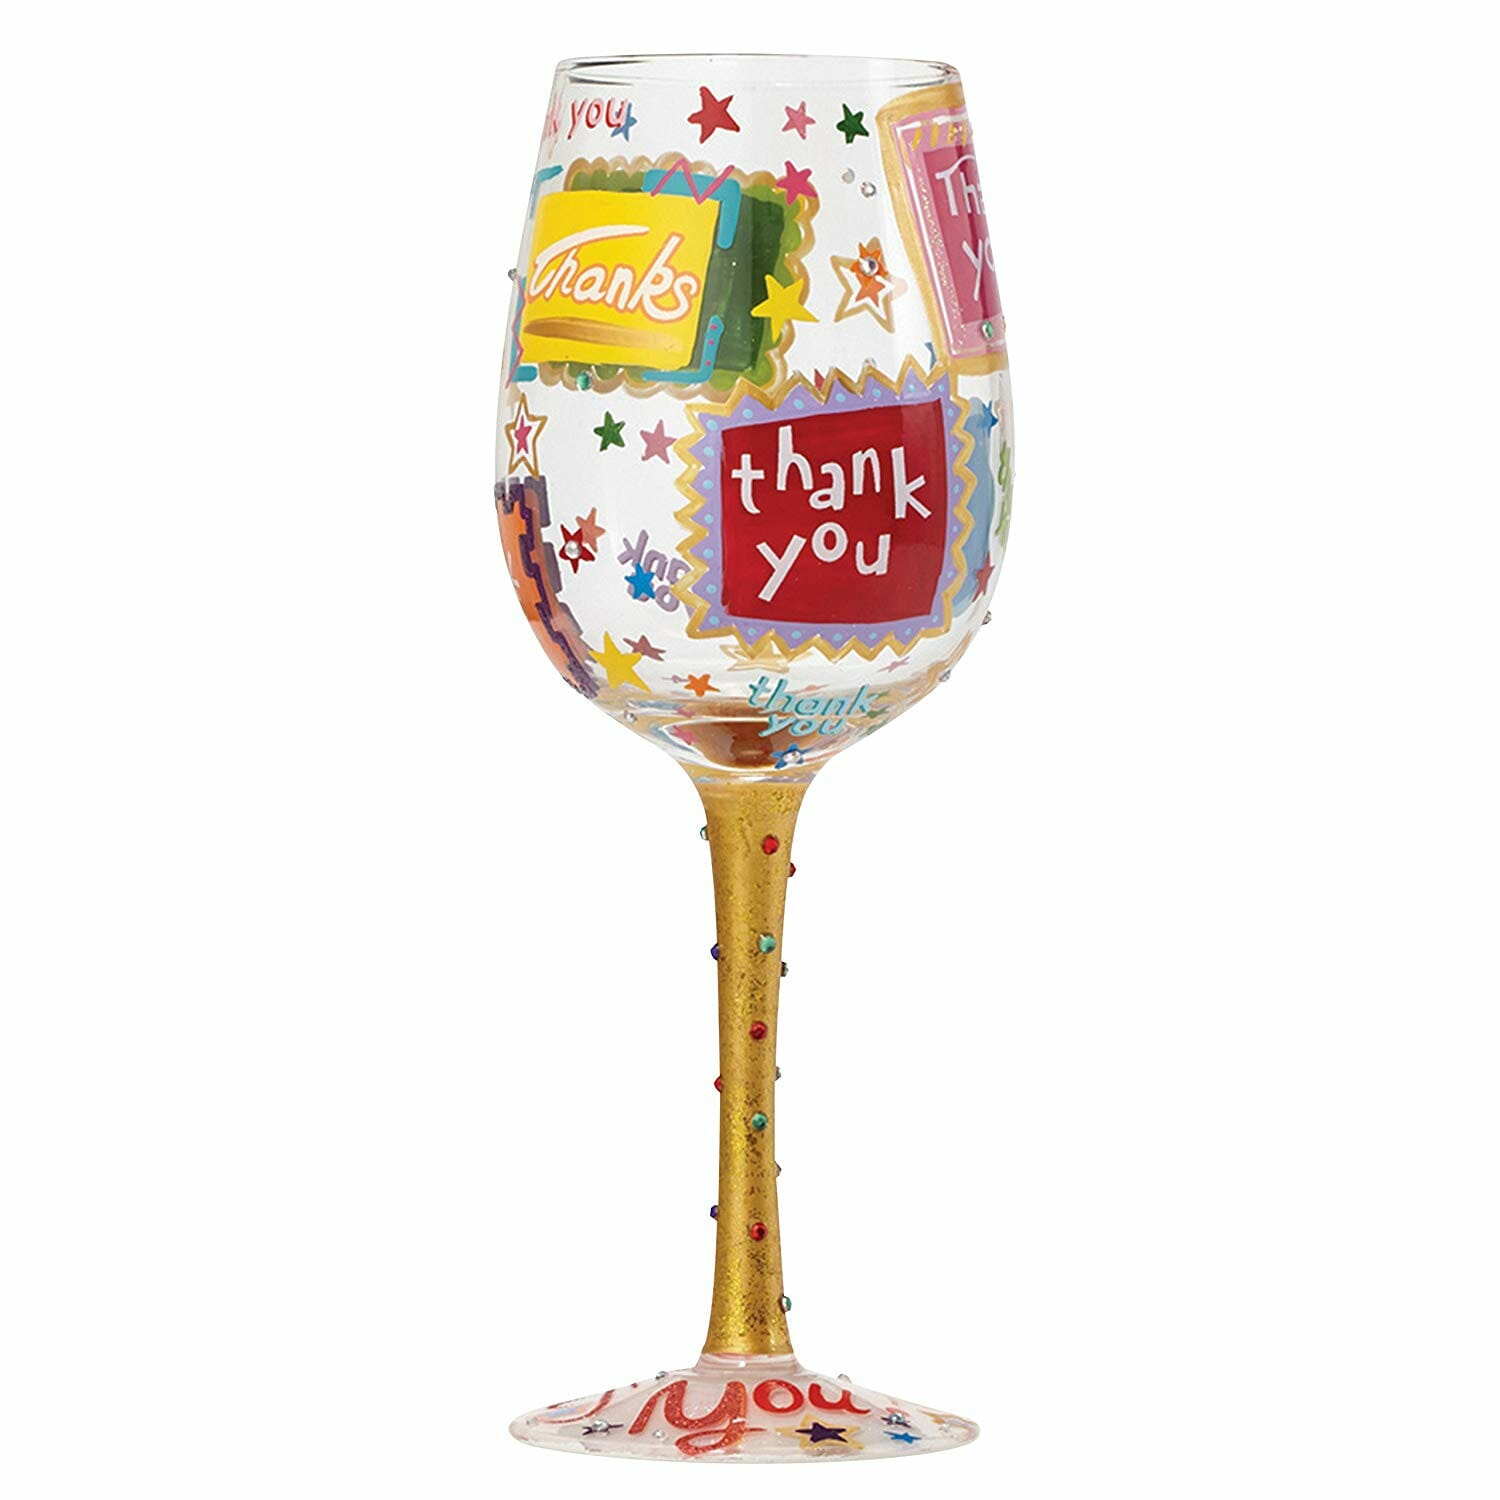 thank-you-gifts-wine-glass